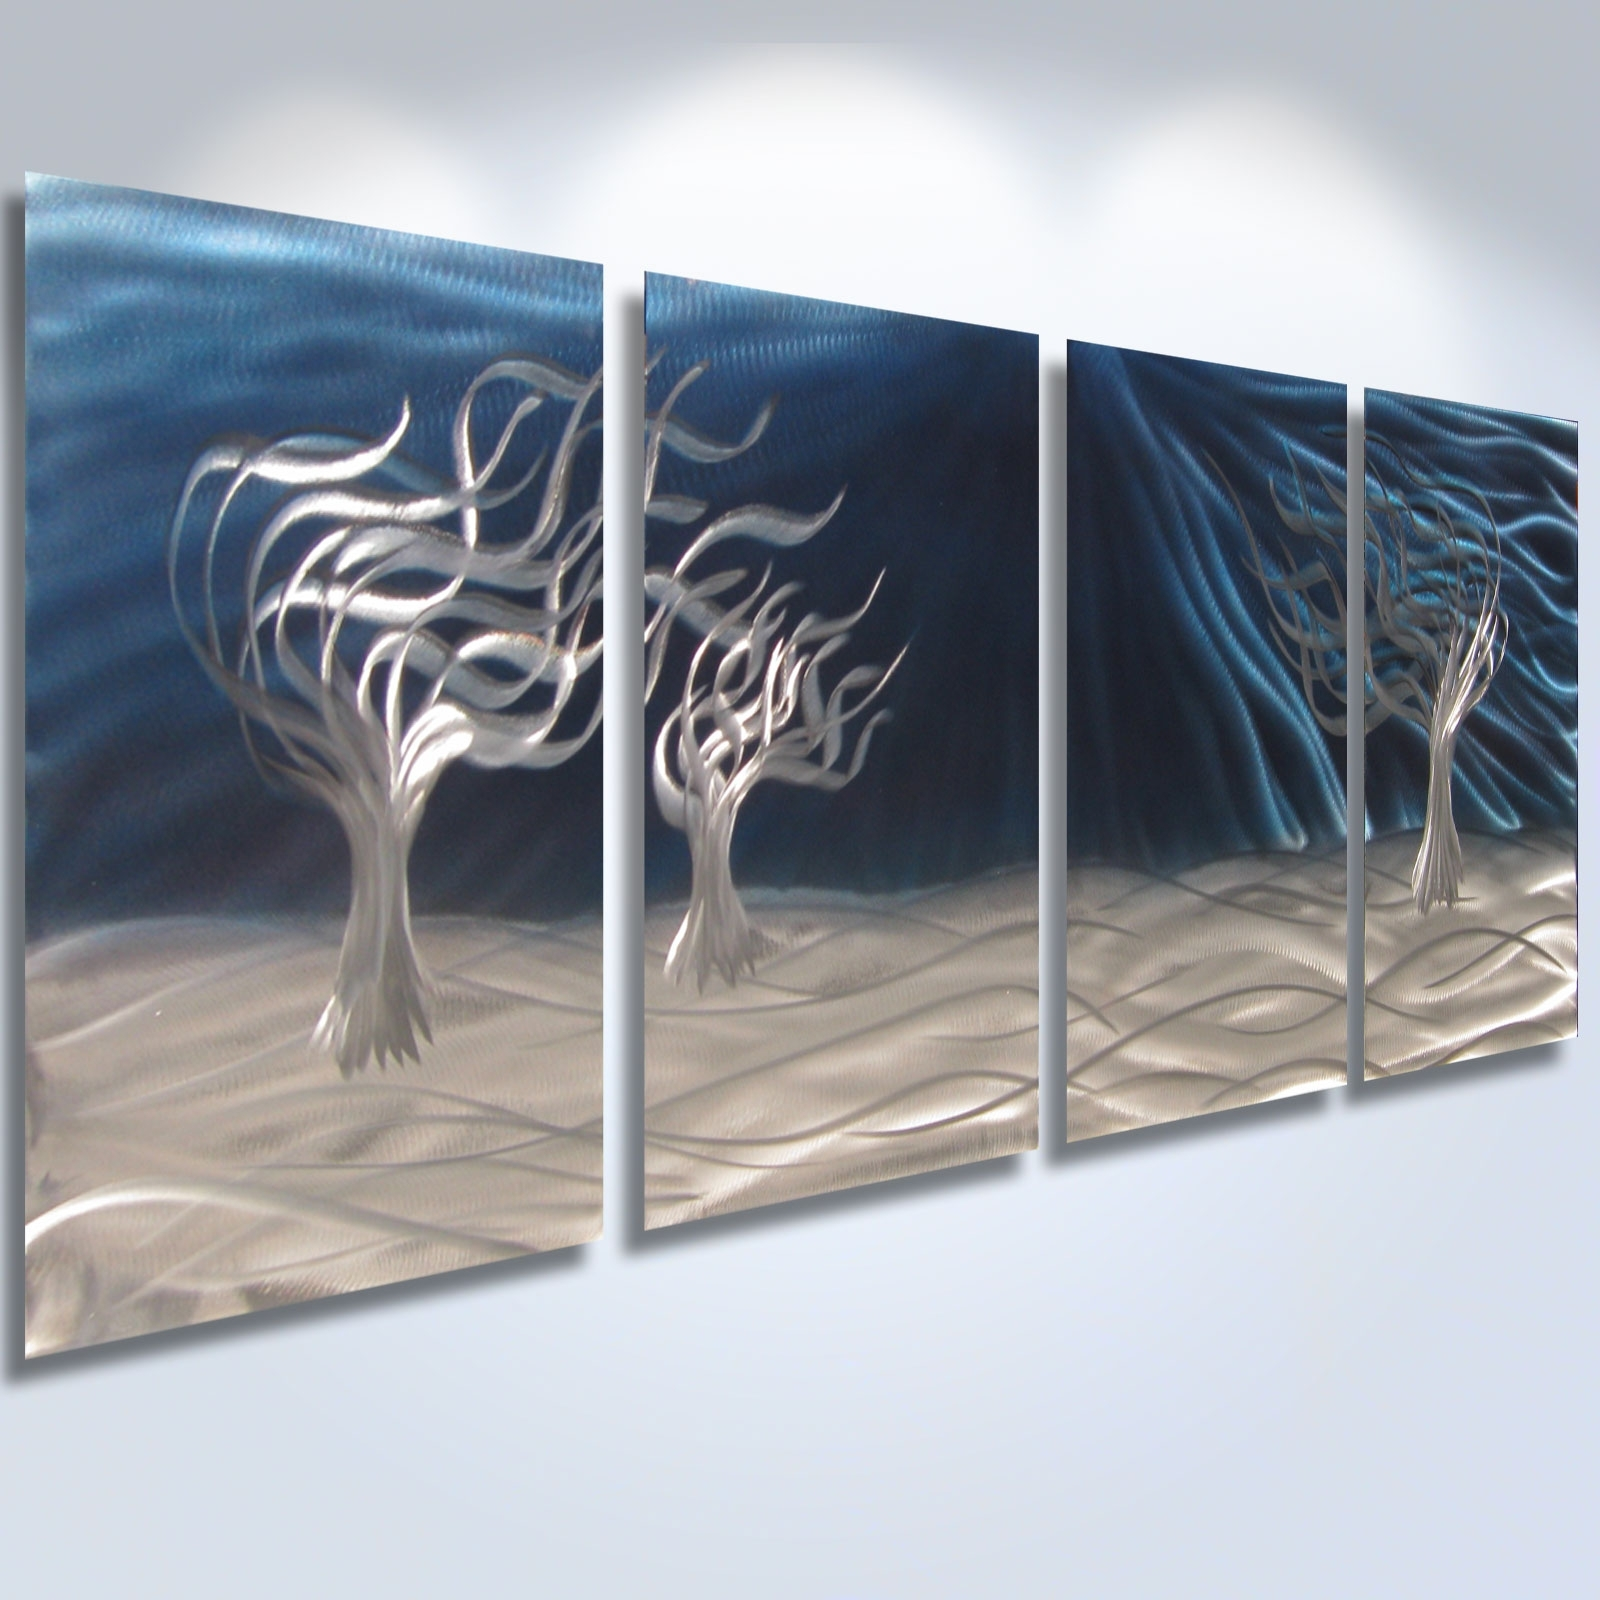 Abstract Metal Sculpture Wall Art Within 2018 3 Trees Blue – Abstract Metal Wall Art Contemporary Modern Decor (Gallery 10 of 15)